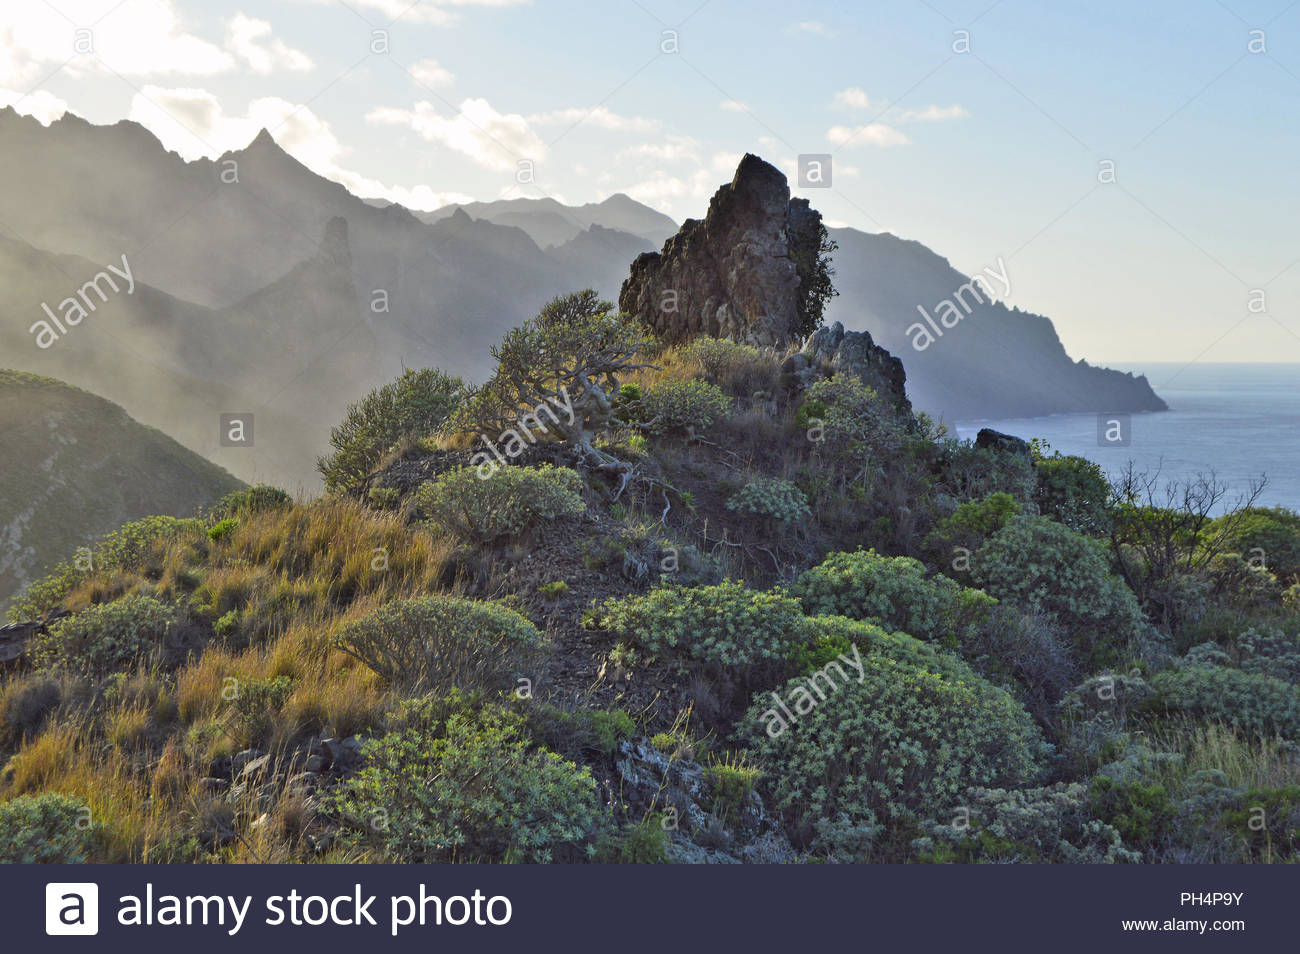 Rugged volcanic landscape with succulent plants, Anaga mountains near Almaciga, northeast of Tenerife Canary Islands Spain. - Stock Image